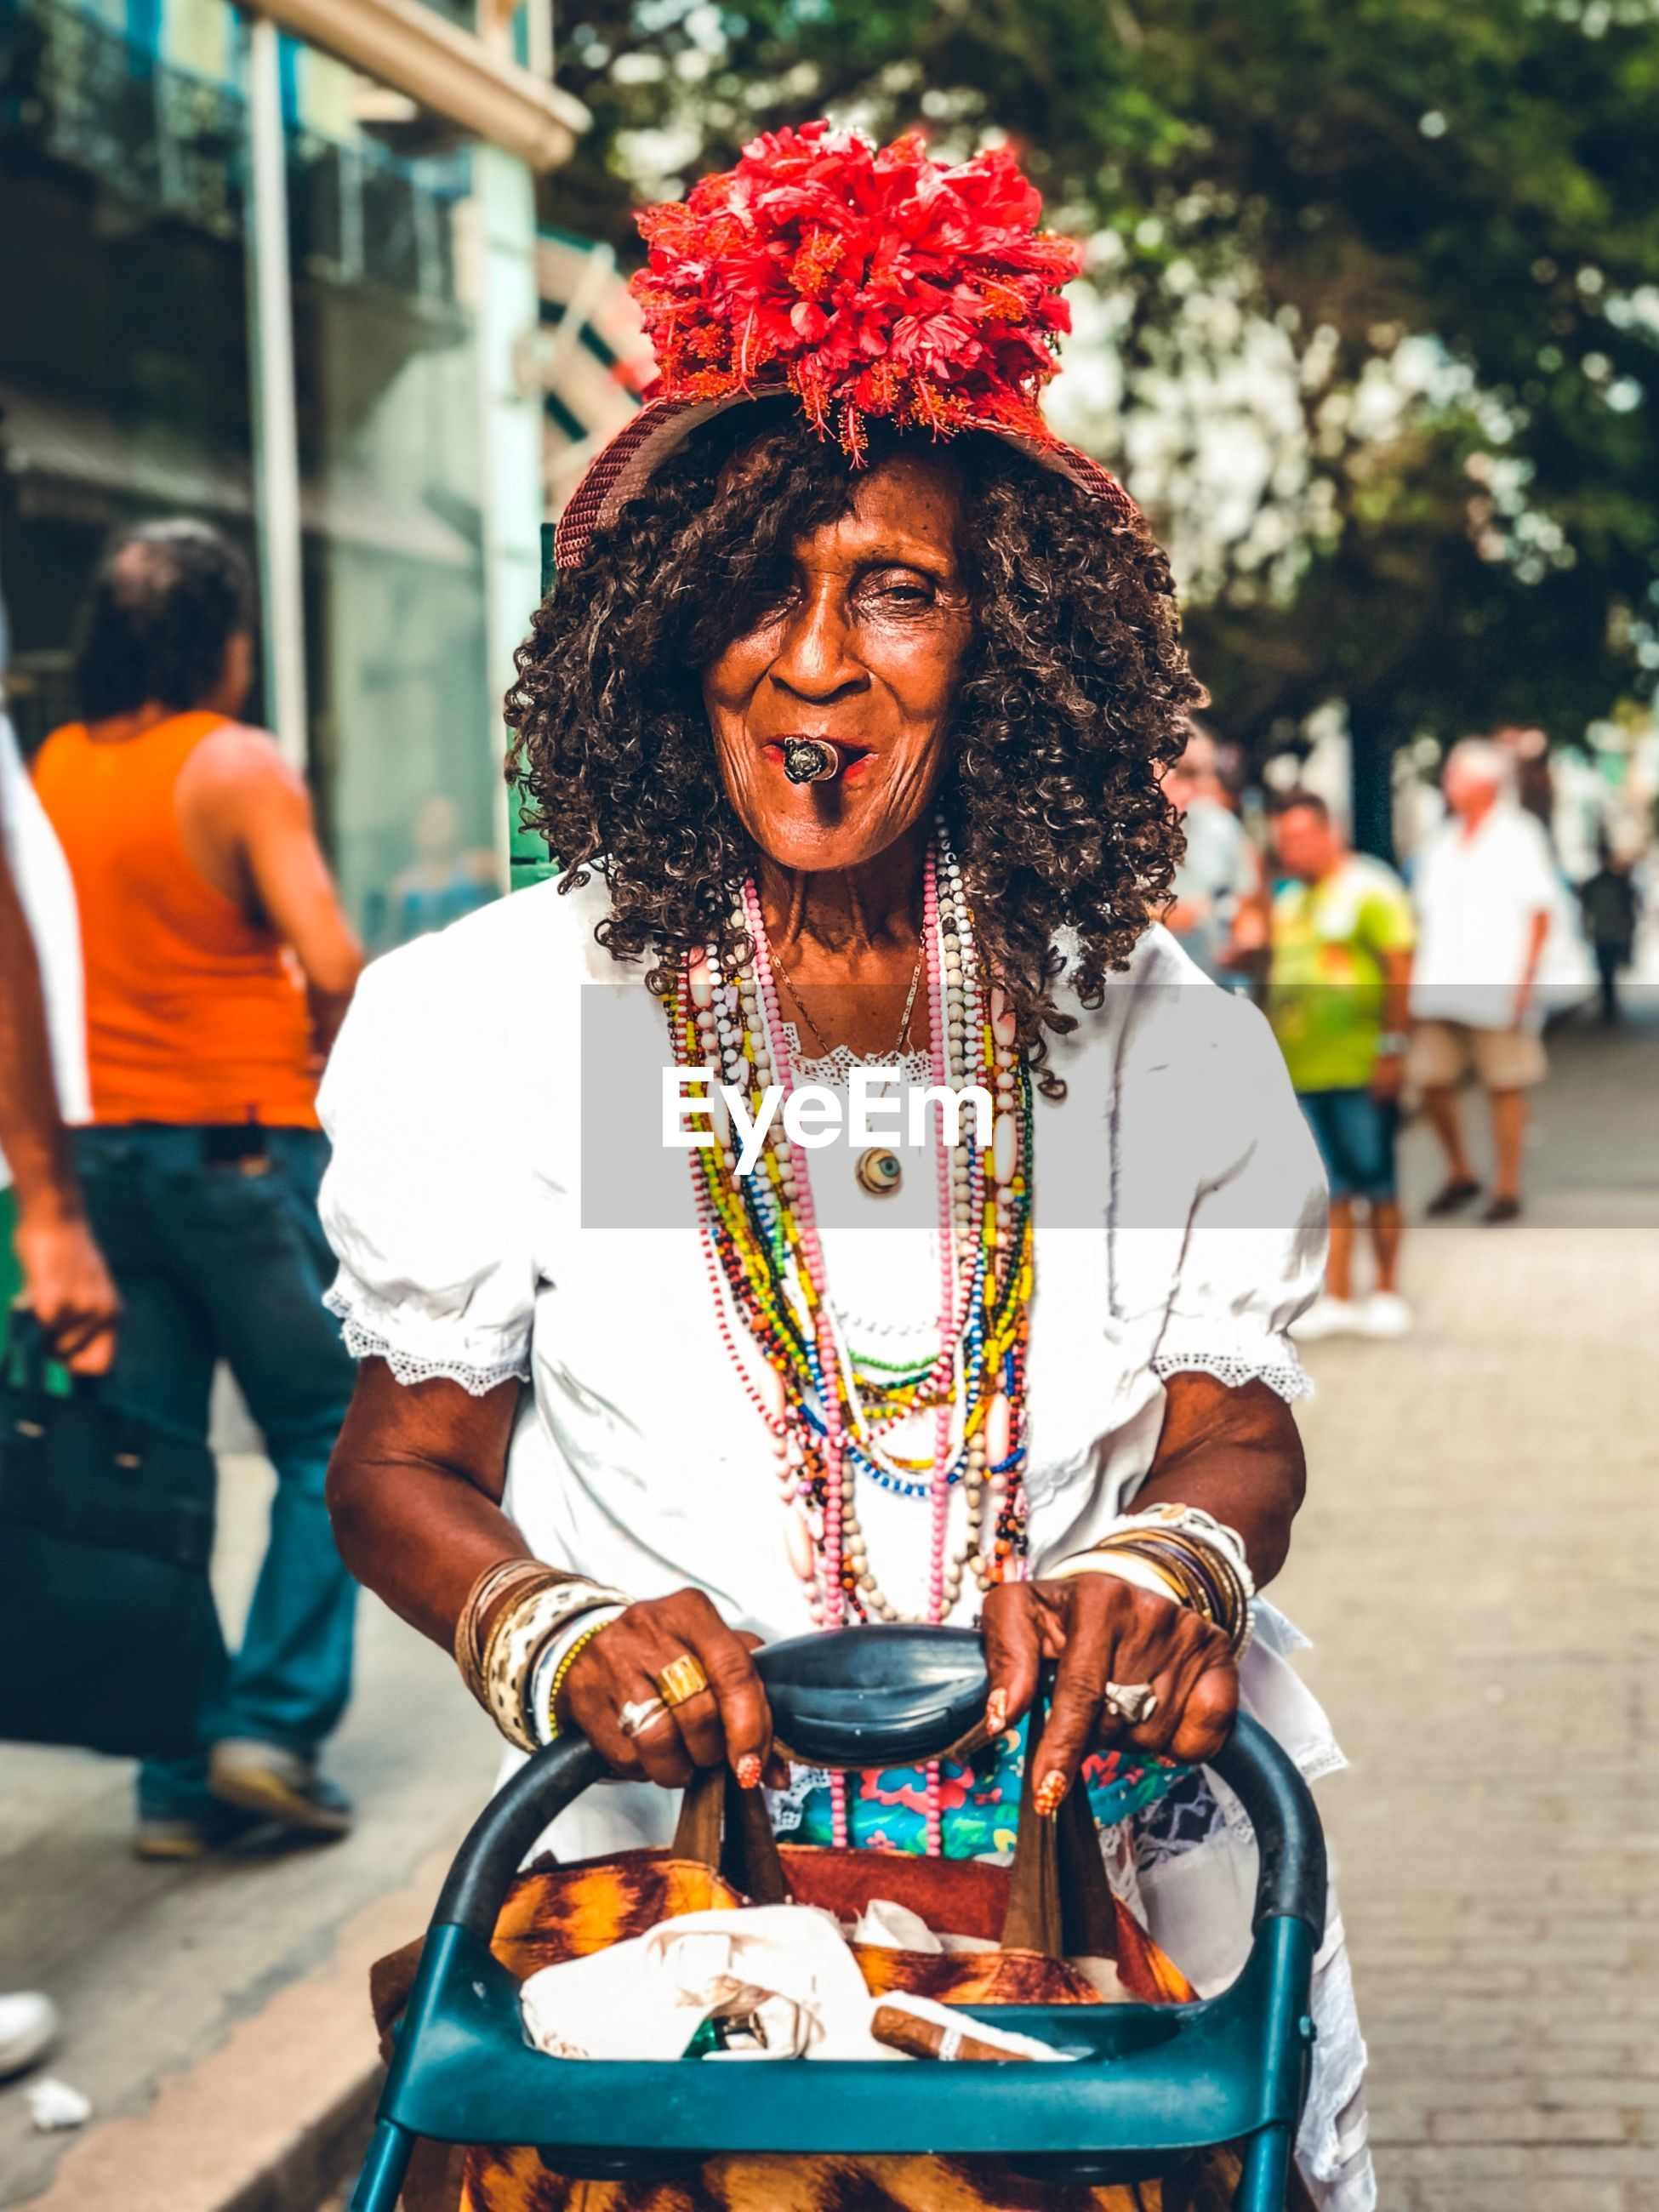 Woman wearing colored necklaces and fancy hat while standing on street in city